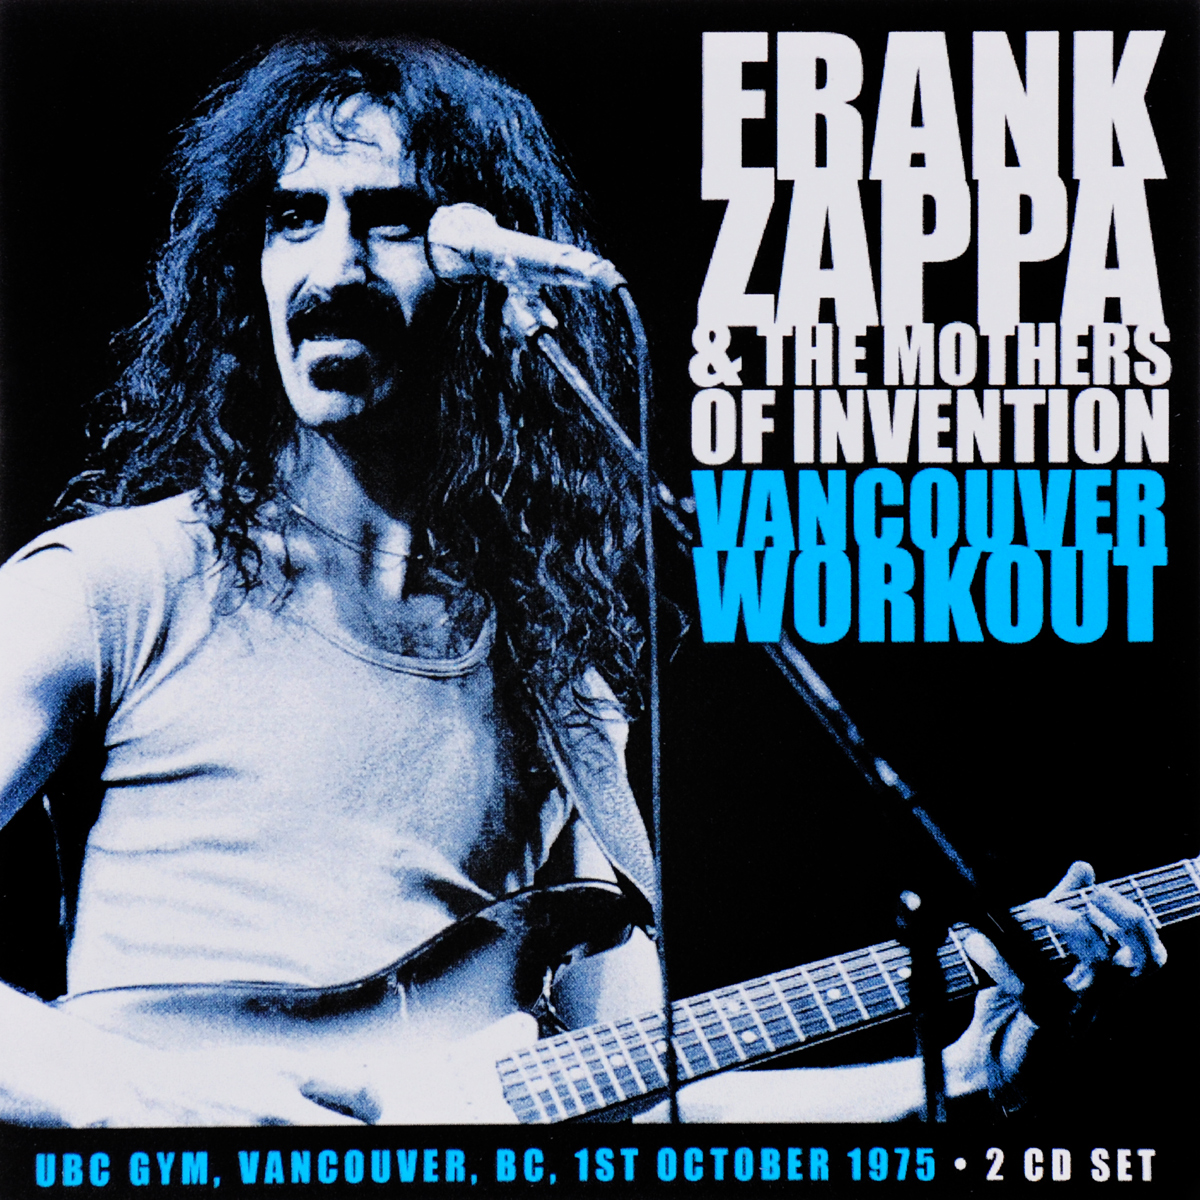 Фрэнк Заппа,The Mothers Of Invention Frank Zappa & The Mothers Of Invention. Vancouver Workout (2 CD) the mothers the mothers fillmore east june 1971